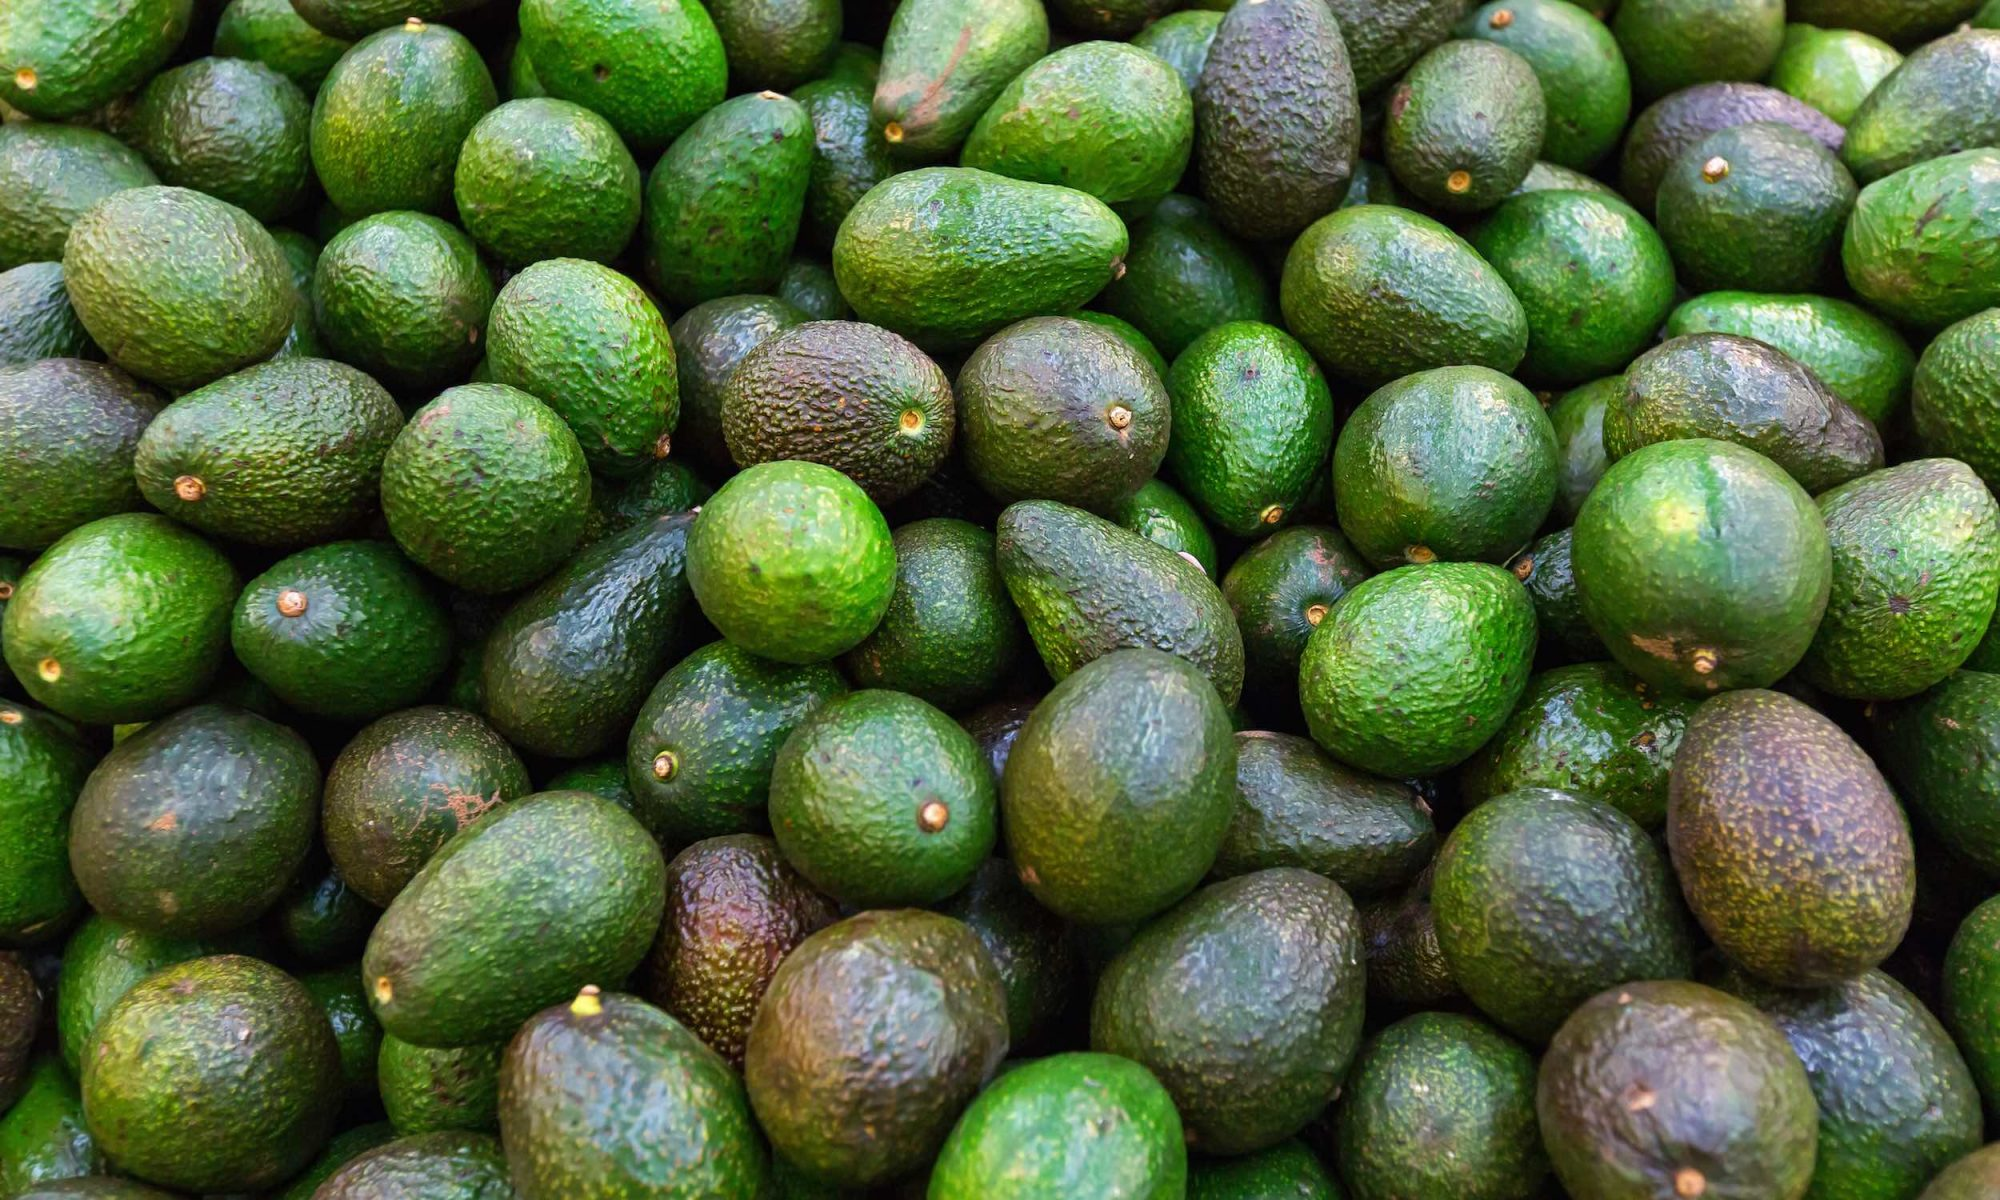 avocado sales double in china